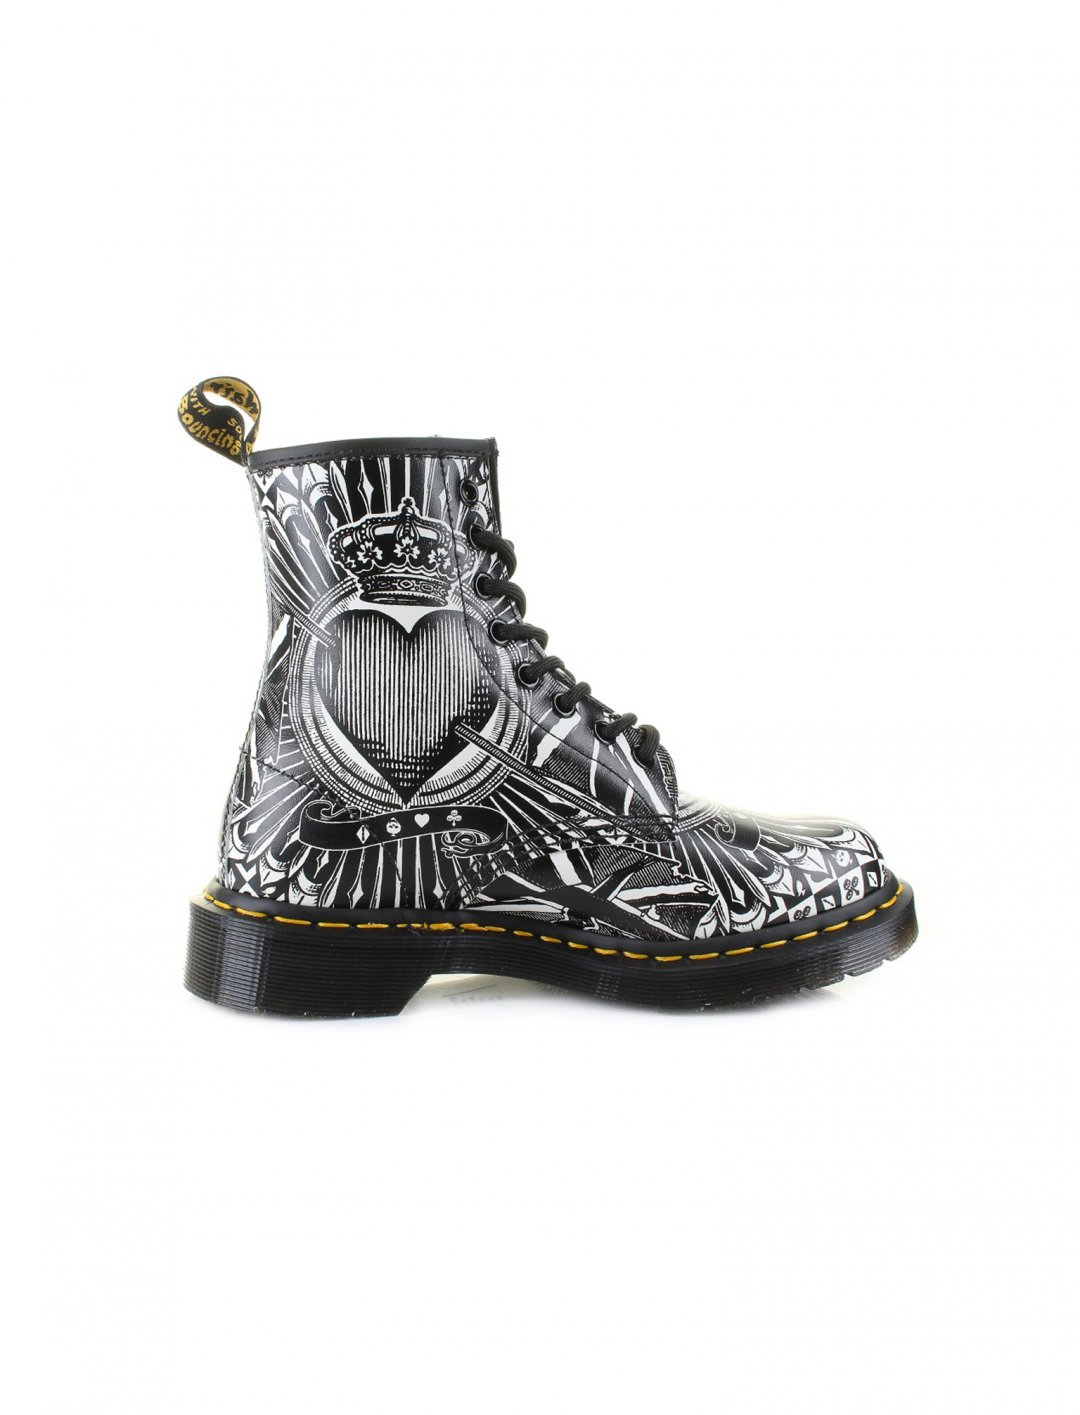 "Brunswick's Shoes {""id"":12,""product_section_id"":1,""name"":""Shoes"",""order"":12} Dr Martens"